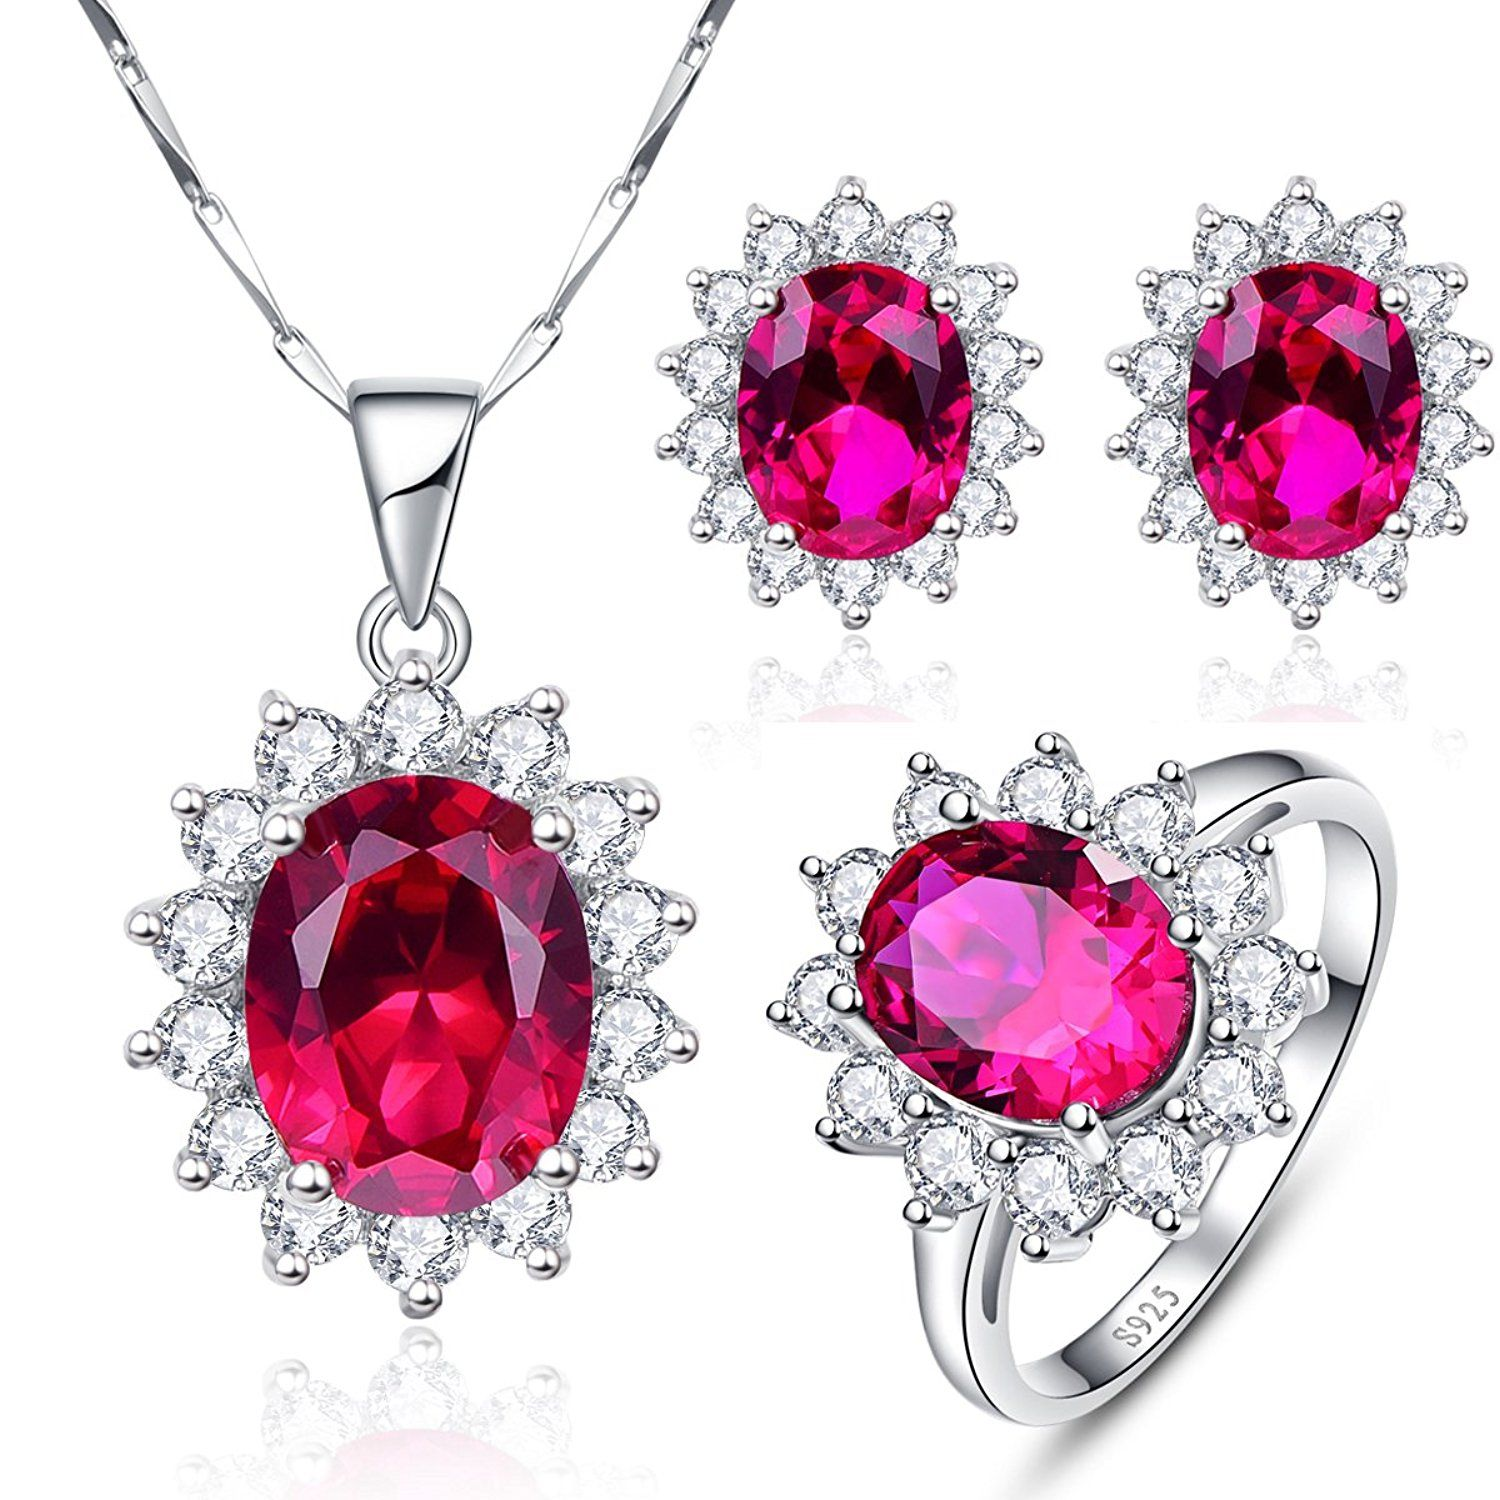 gold copy ruby dsc wedding jewellery necklace collection jewelry bridal